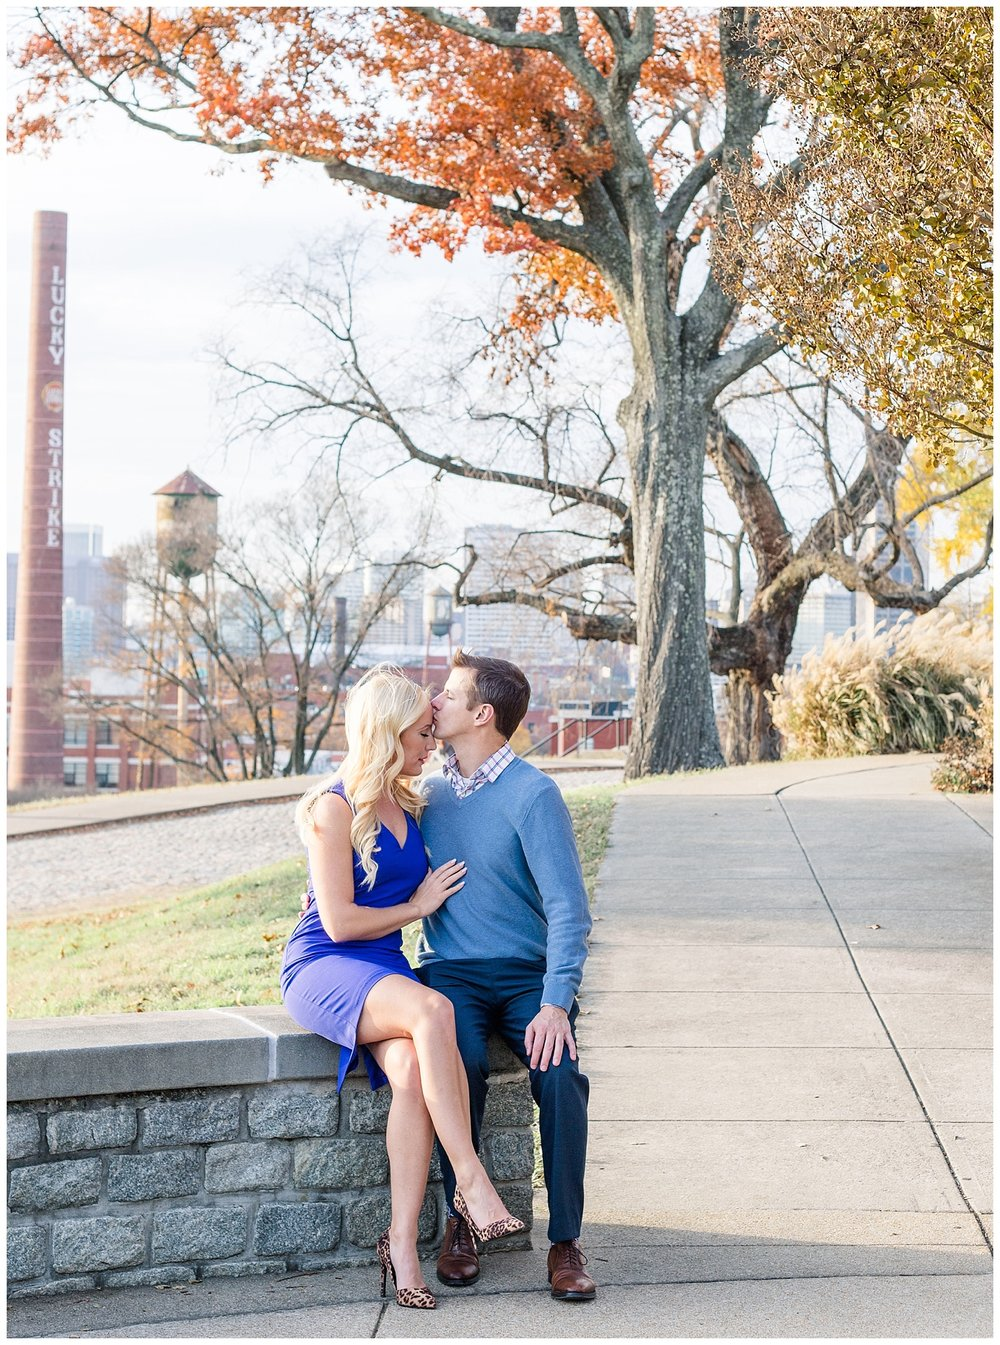 Church Hill Engagement Photos, Richmond VA - Libby Hill Park